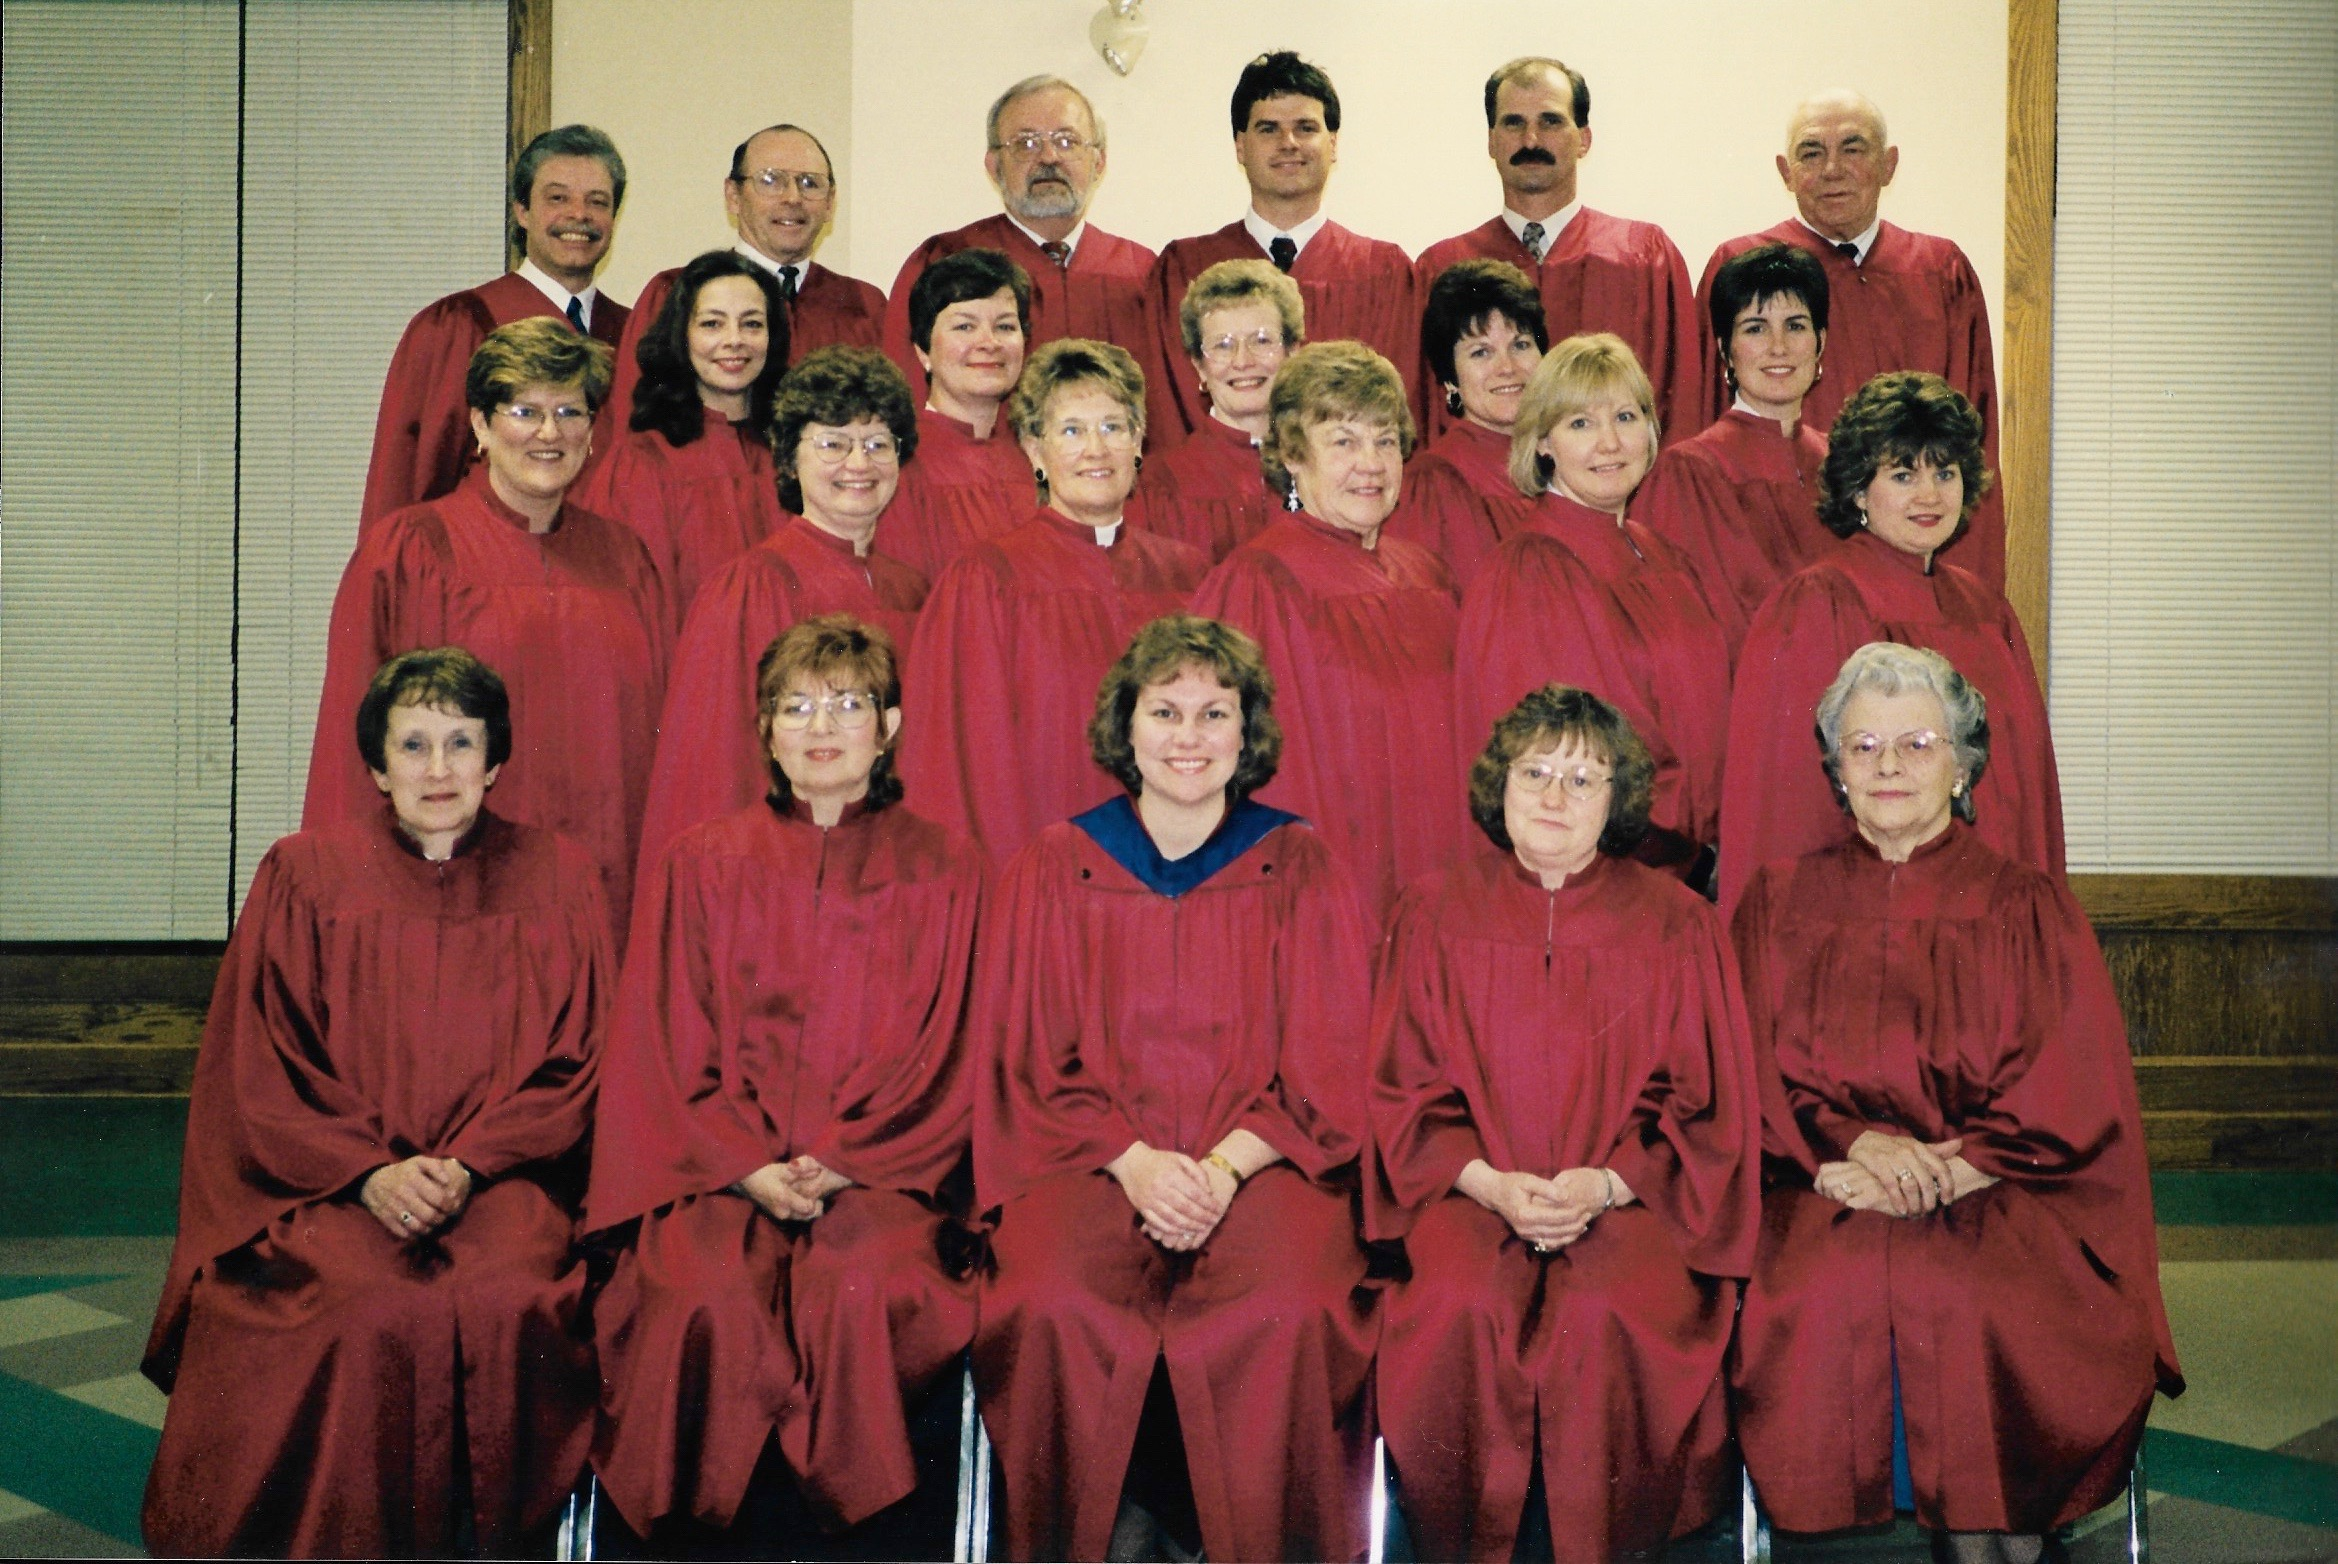 Knox Choir 1997   Back row L-R:  Ron Berlett, Charlie Corry, Don Fischer, Ron Lockie, Paul Karges, Sam Johnston  3rd row L-R:  Virginia Rushton/Spence, Jeanne Fischer, Deanne Cressman, Jean Jinkinson, Lynn Kerr  2nd row L-R:  Julie Newbigging, Ethel Corry, Lois Aitchison, Marcie Johnston, Laura Tryssenaar, Lee Anne Andriessen  Front row L-R:  Marlene Henderson, Brenda Kaufman, Agnes-Marie Lockie/Henderson (Director), Sandy Valley, Anne Moir-Johnson